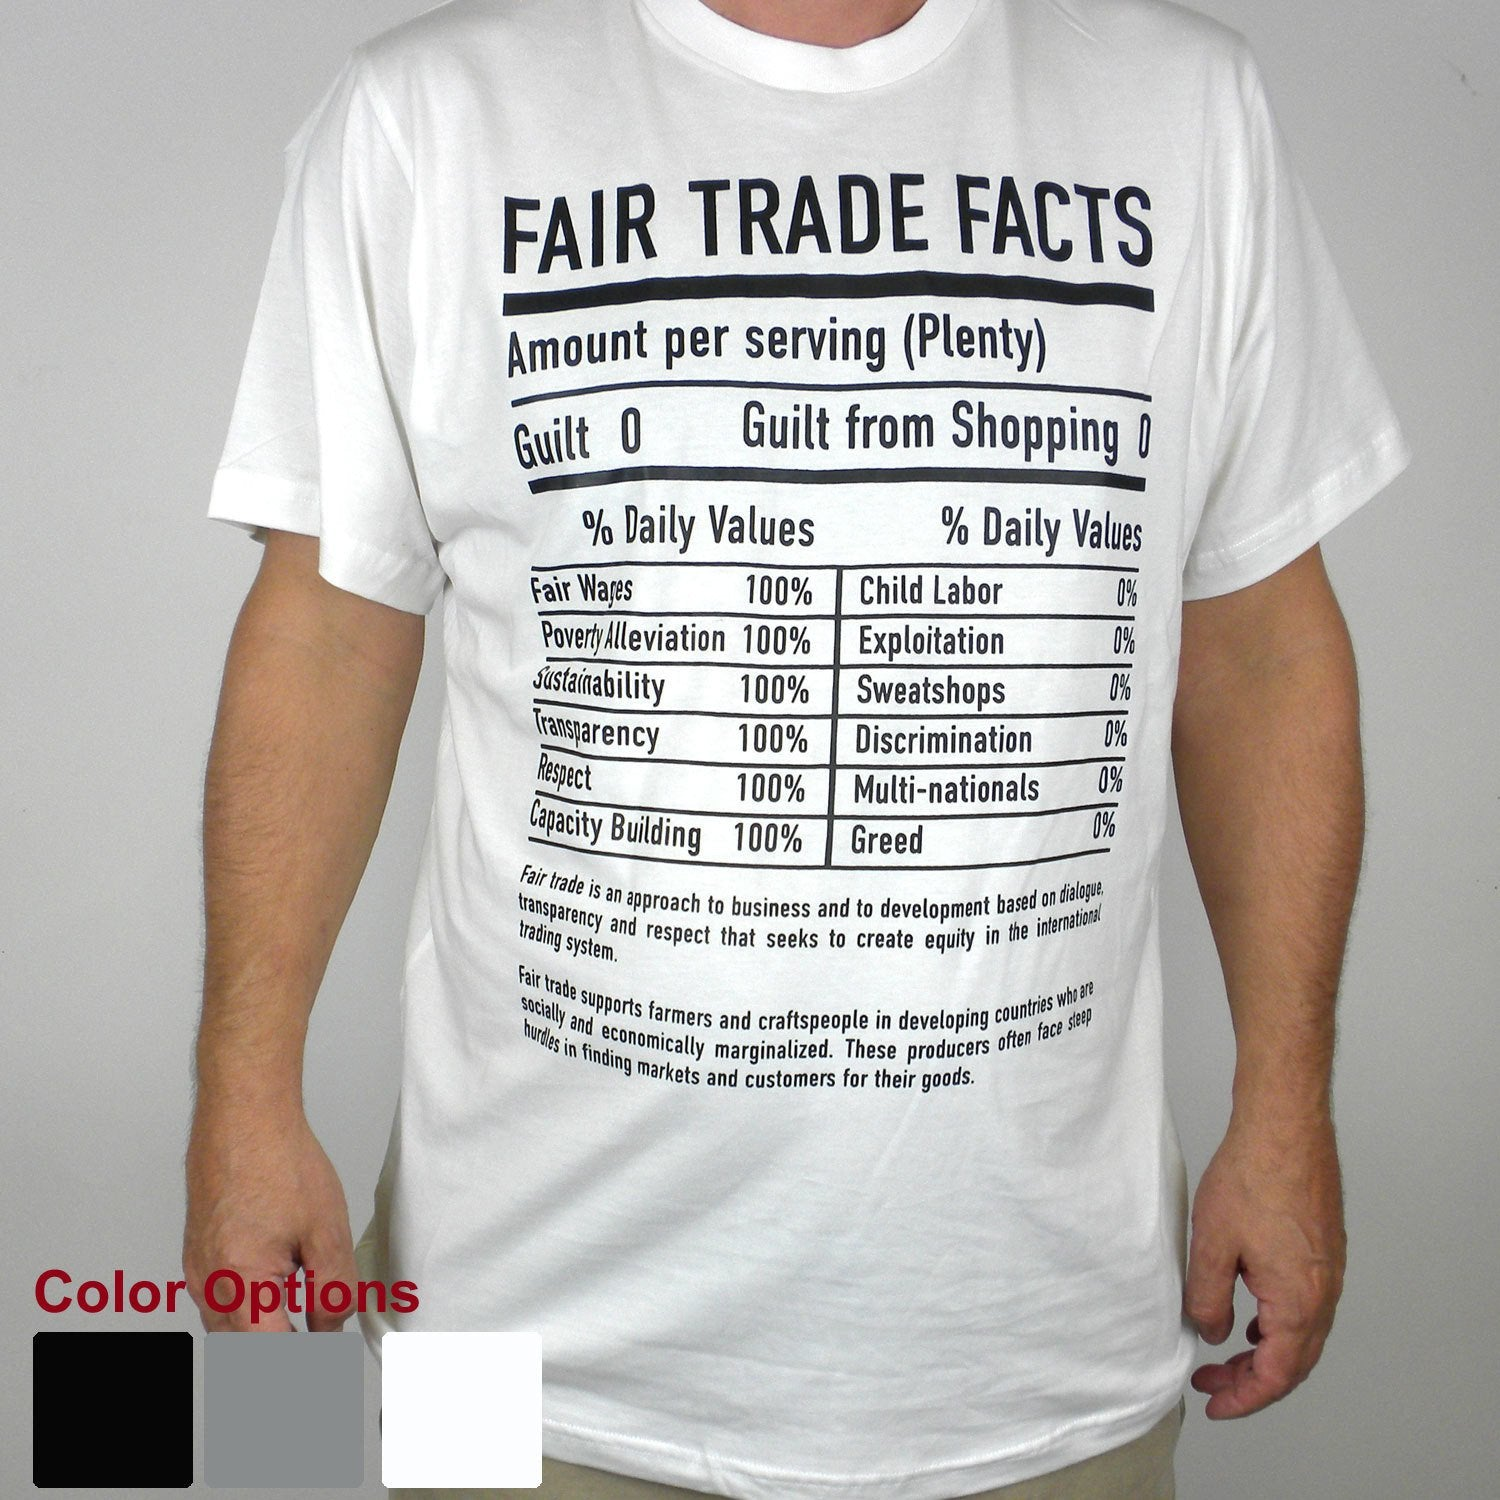 White Tee Shirt FT Facts on Front - Unisex Small